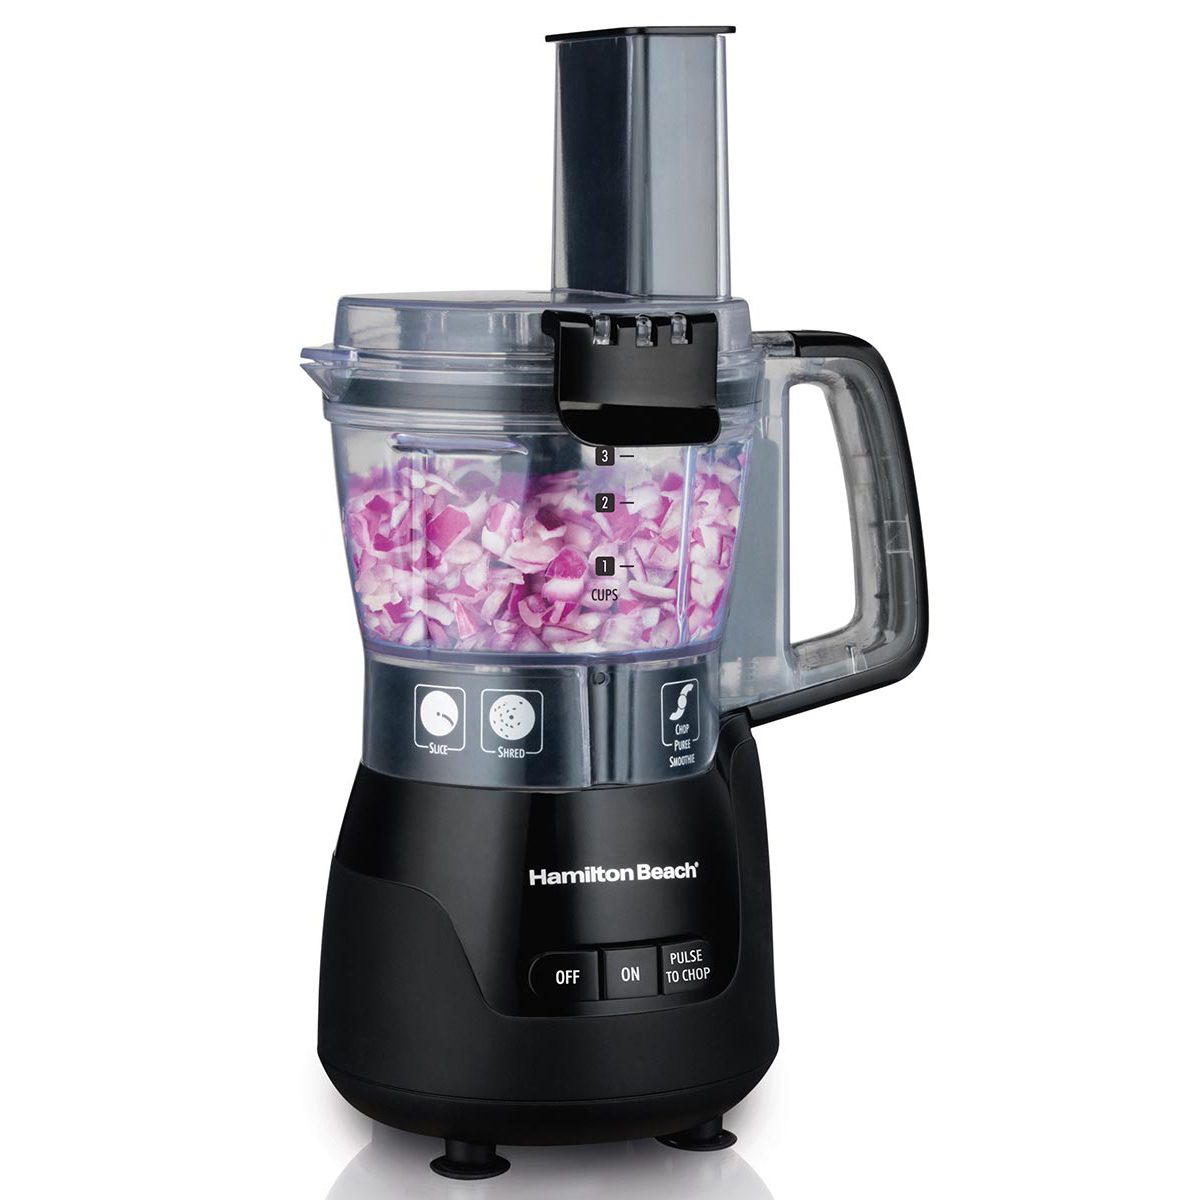 4-Cup Stack & Snap™ Compact Food Processor with Blending, Black (70510)